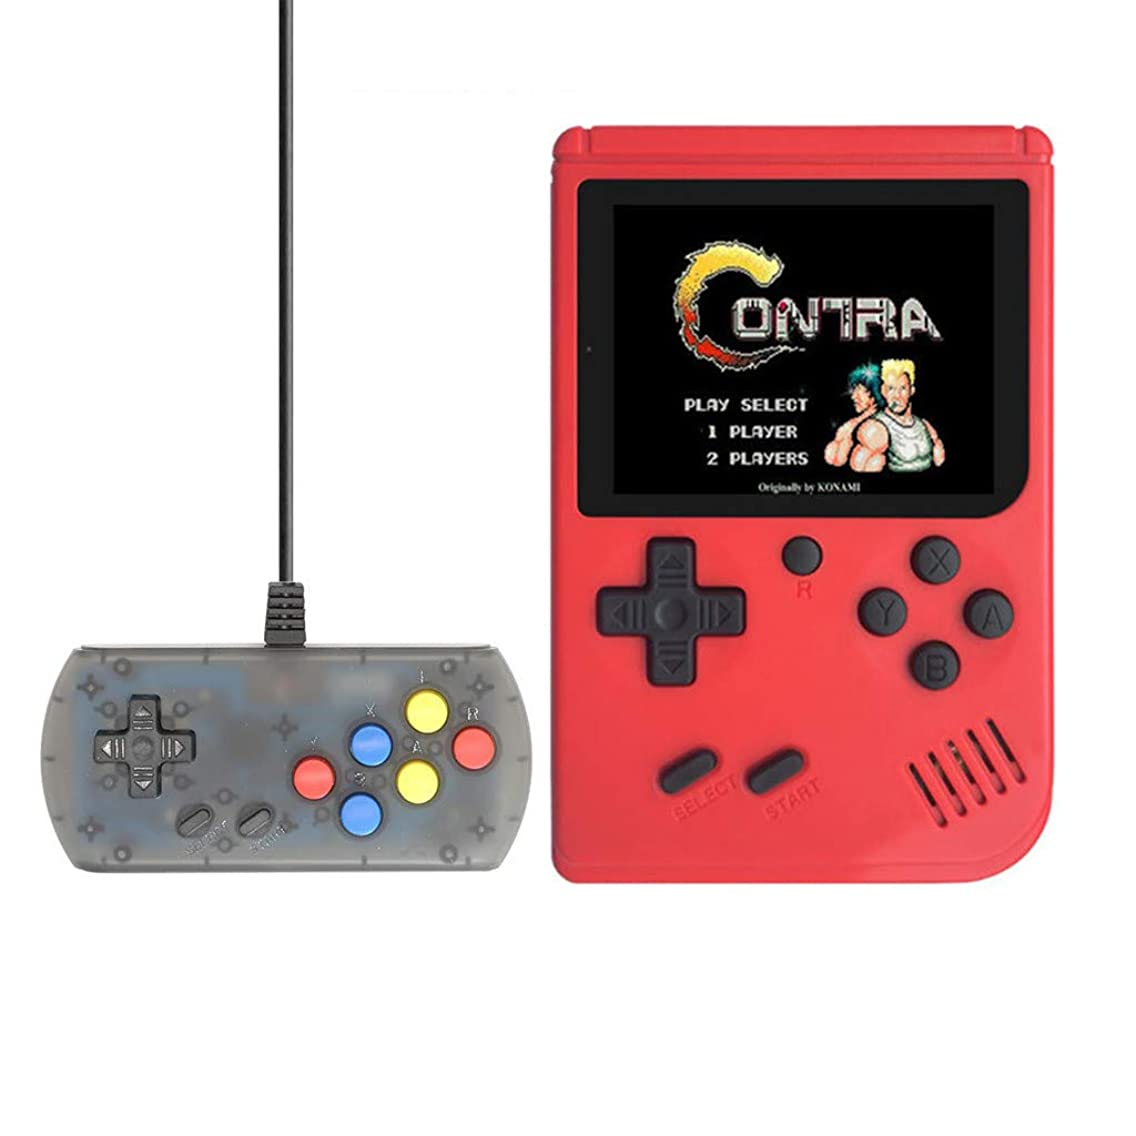 CreazyBee 2019 New 3.0 Inch 168 Retro Games Handheld Game Player As A Gift for Children (Red)